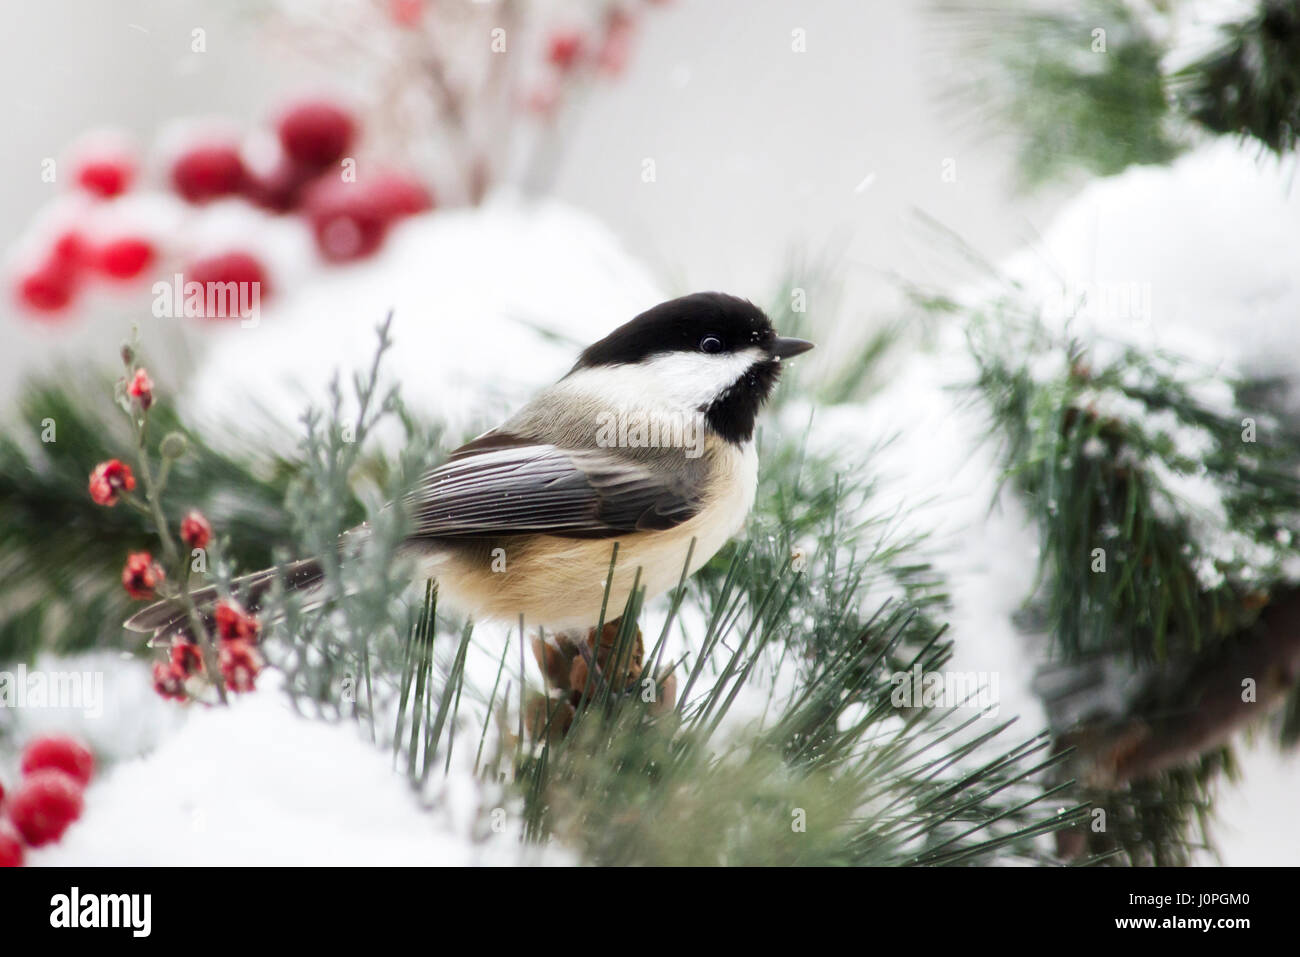 Black capped chickadee bird close up in winter snow. - Stock Image